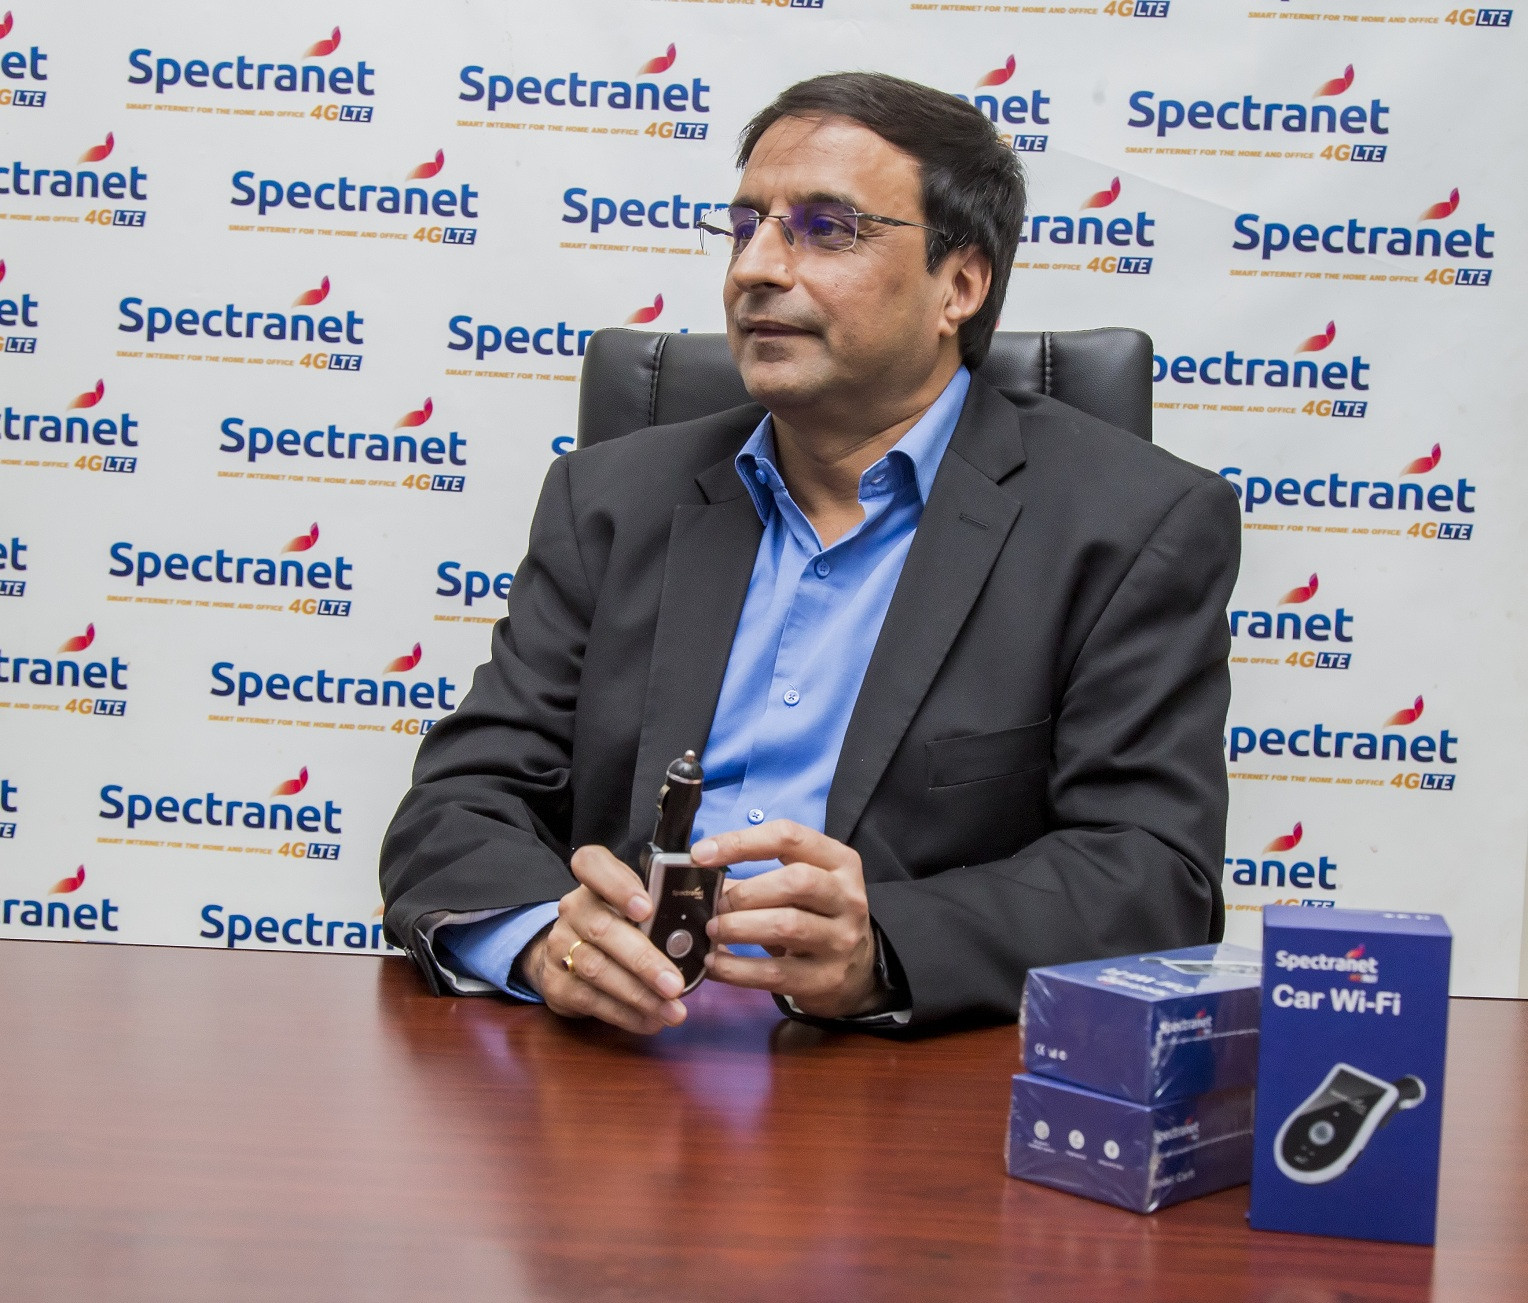 Spectranet launches Car-Fi, a lifestyle product targeting premium Internet customers